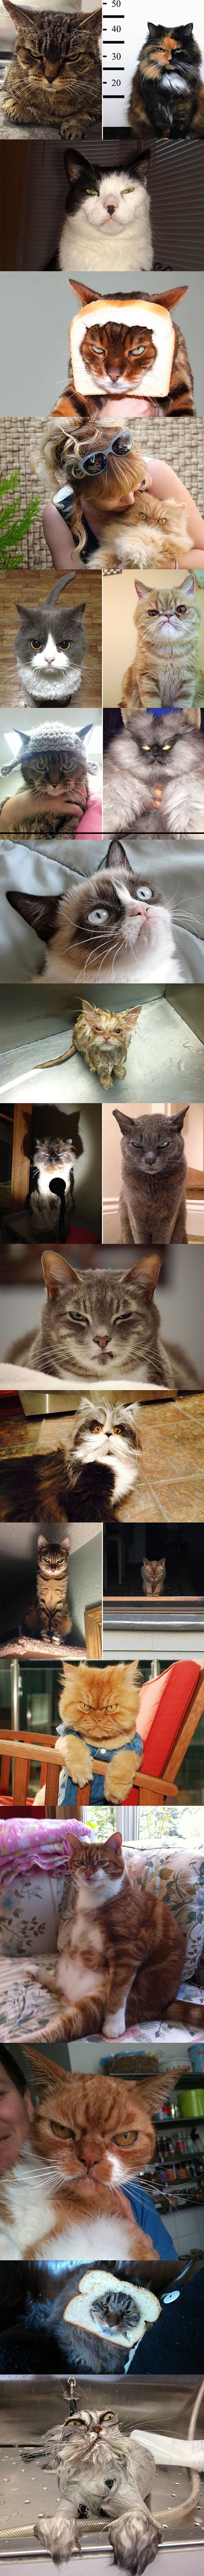 funny-mean-cats-look-evil-angry-looking